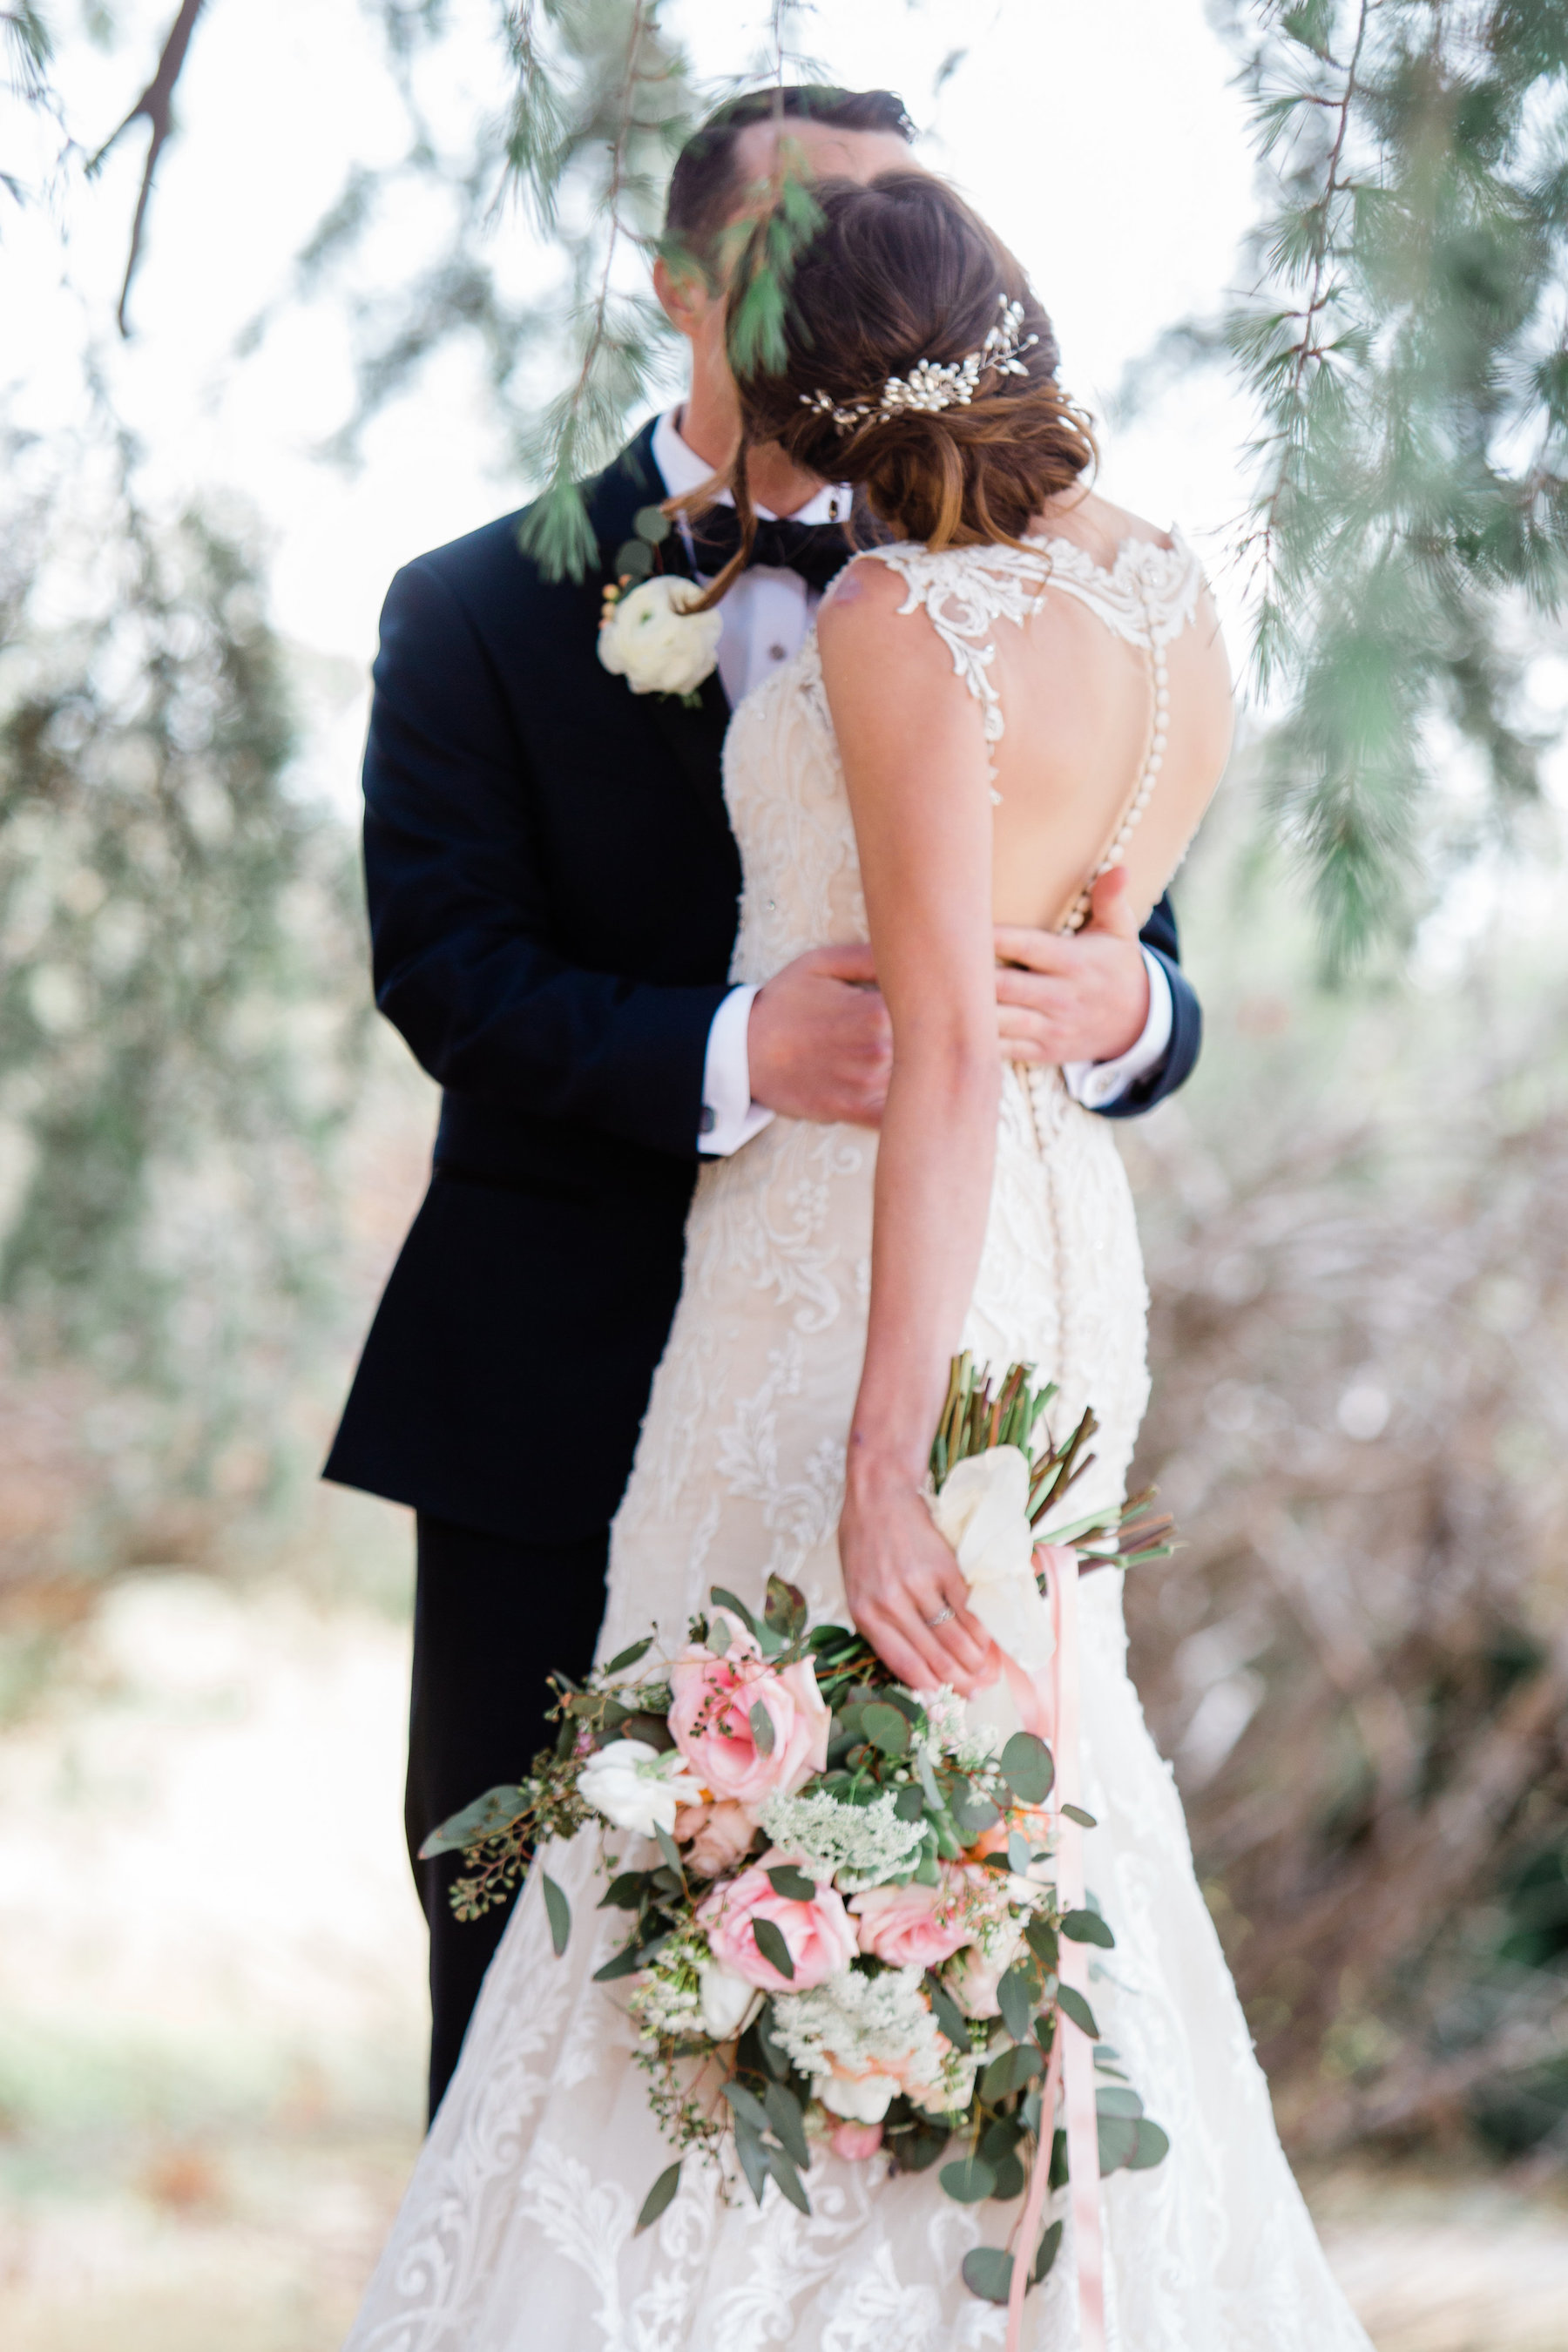 Venue- Highland Springs Ranch & Inn, Cherry Valley, CA; Photography- Lauriana Fortuana; Florals, The Nature of Things; Dress Redesign- Cherie Riley; Hair & Makeup- Cori Stephenson; Q The Music DJ, Video- Scott Davis